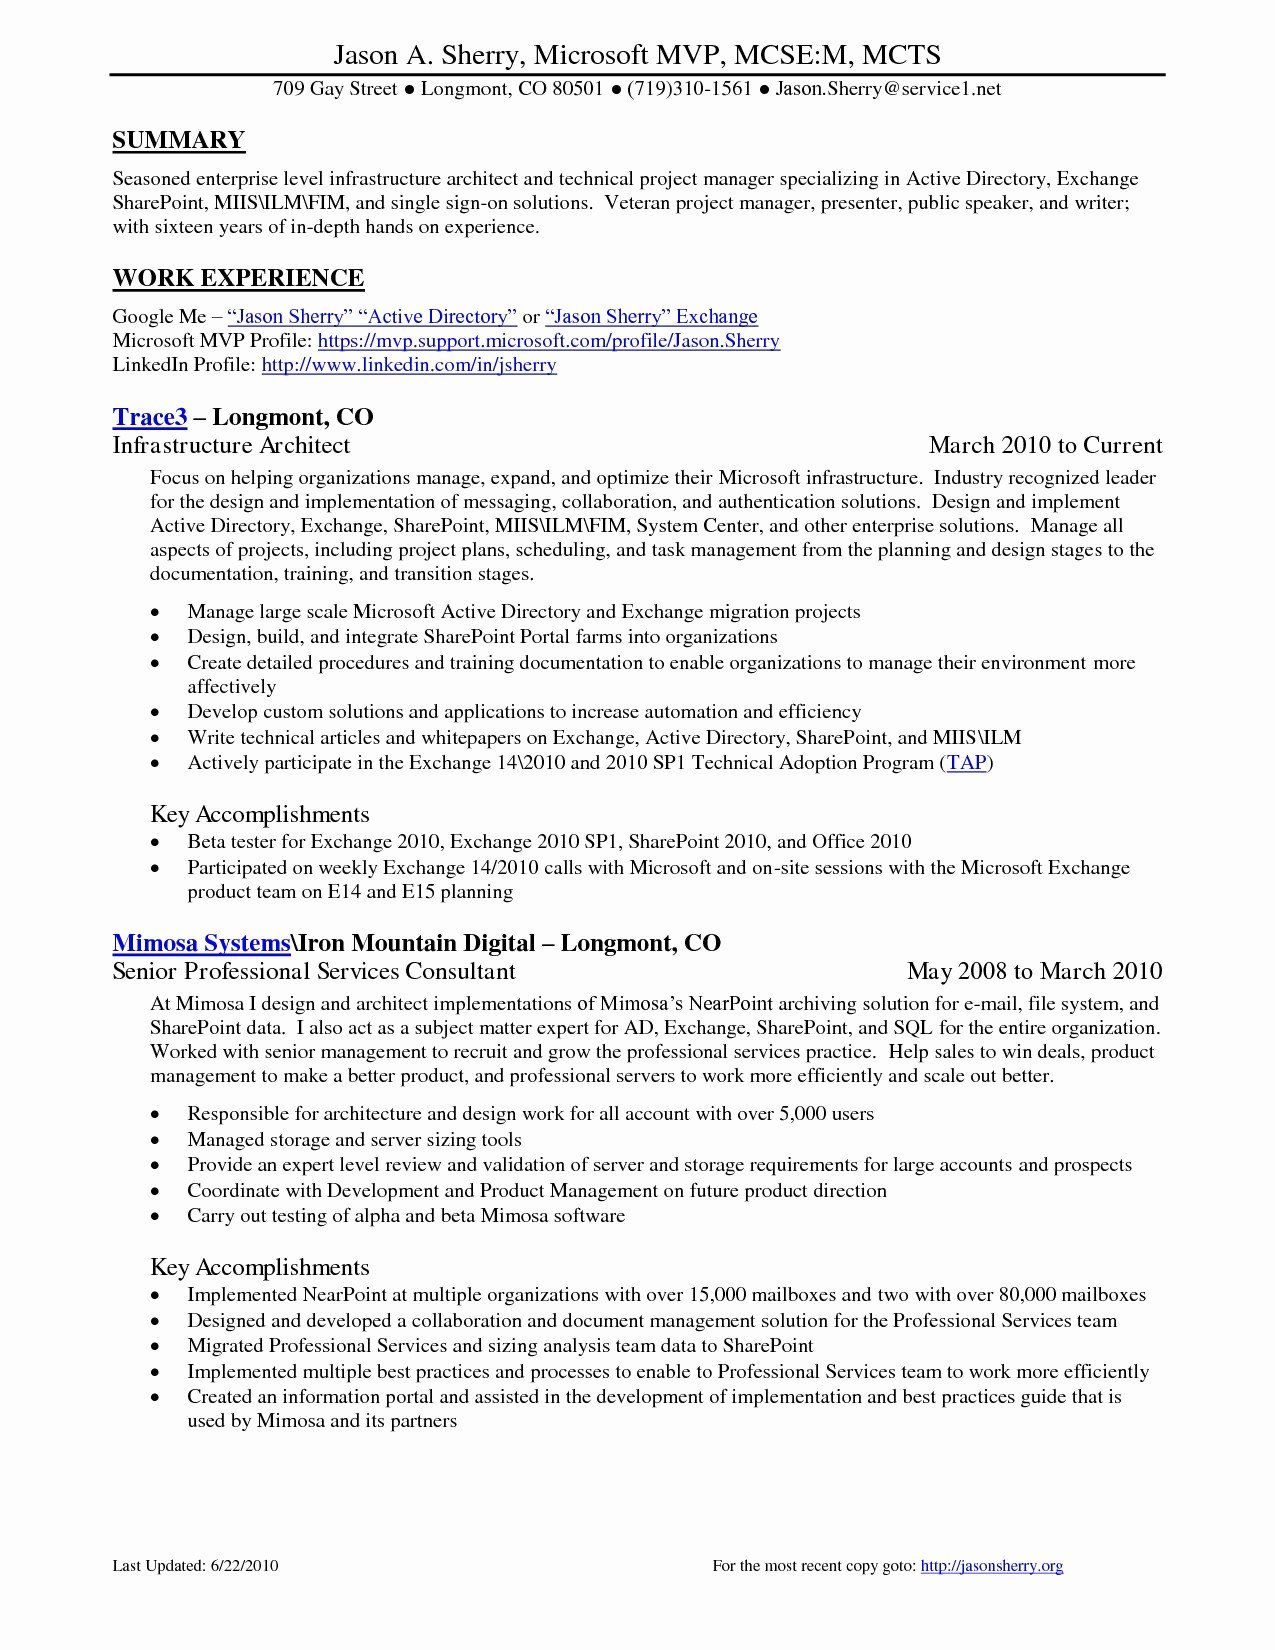 Technical Project Manager Resume 23 New Stock Technical Project Manager Resume Sample Project Manager Resume Manager Resume Job Resume Examples